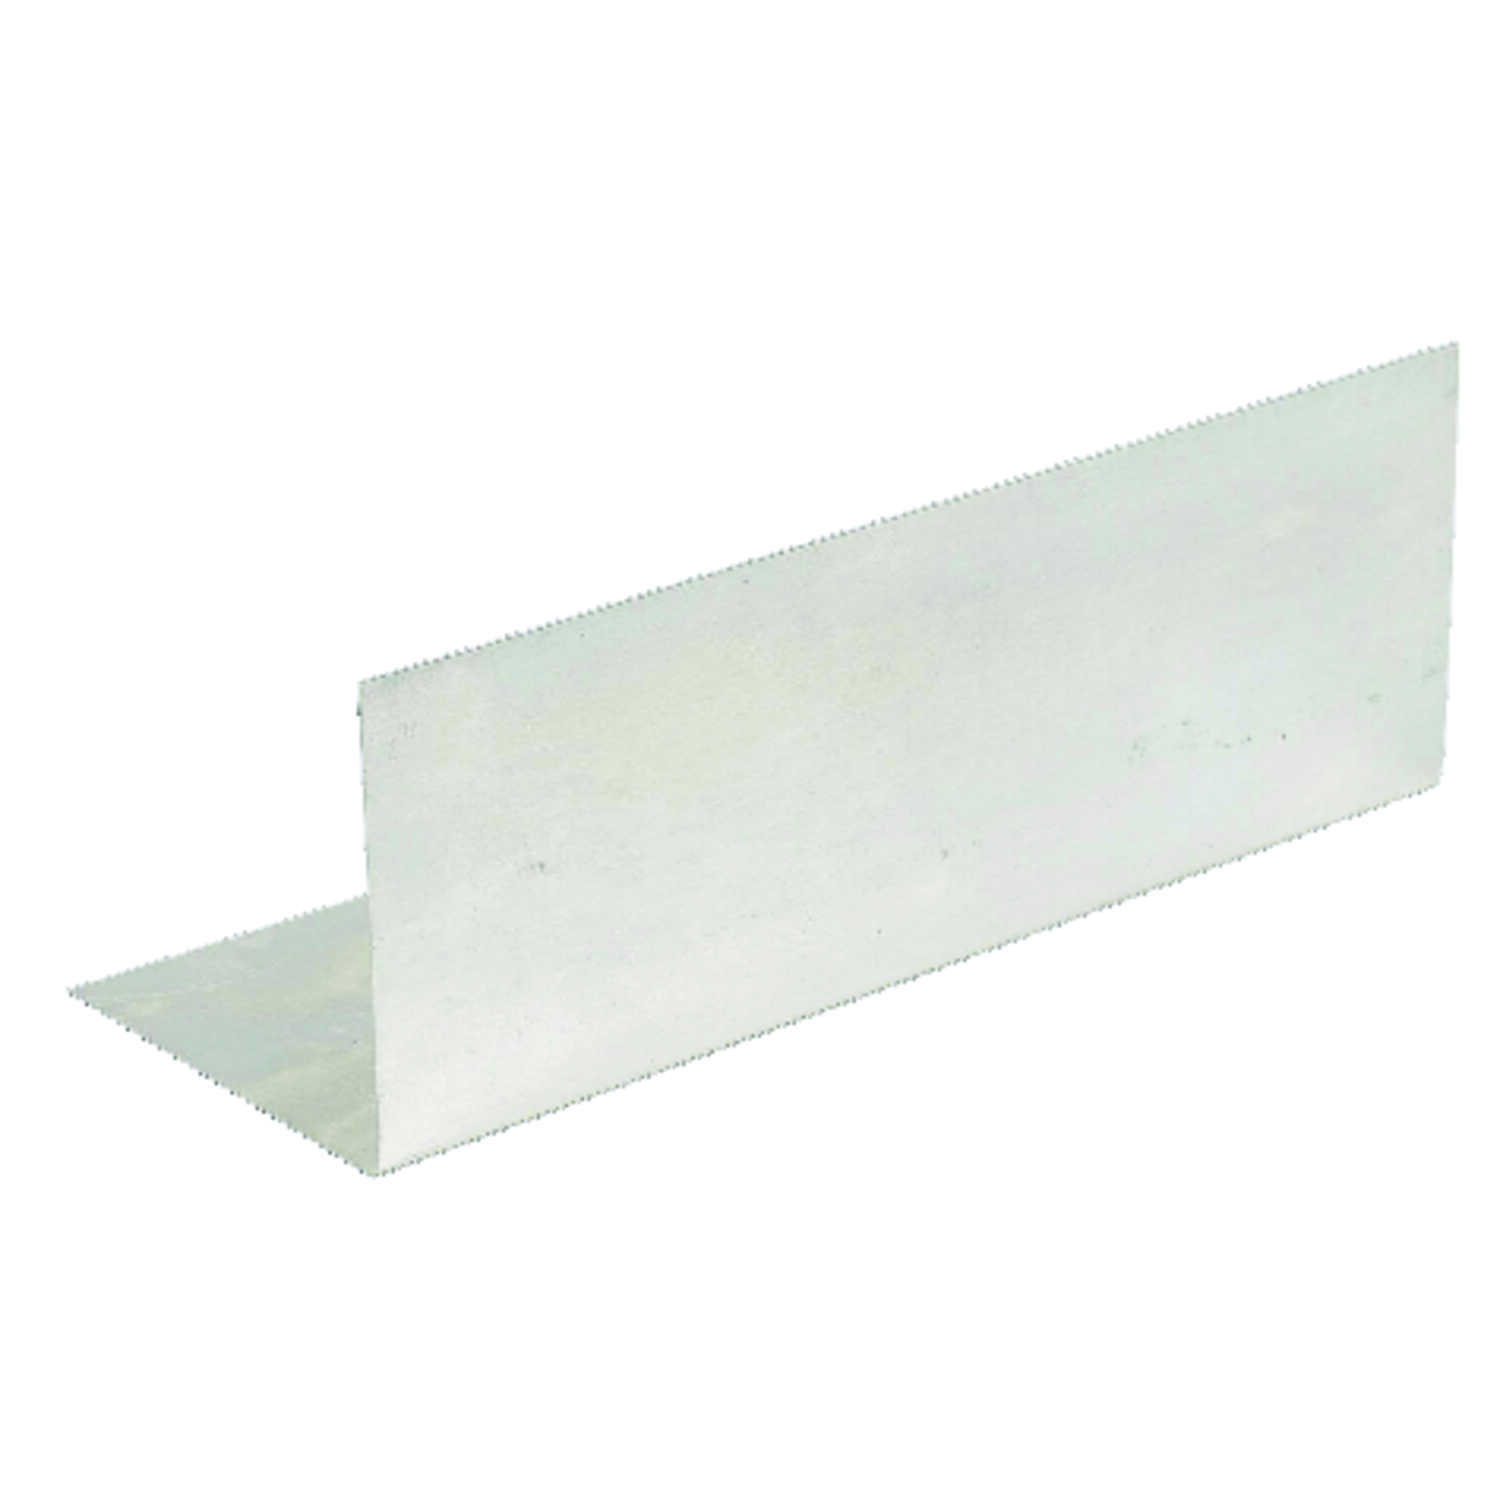 Amerimax  2.5 in. W x 7 in. L Galvanized Steel  Pre-Bent Step Flashing  Silver